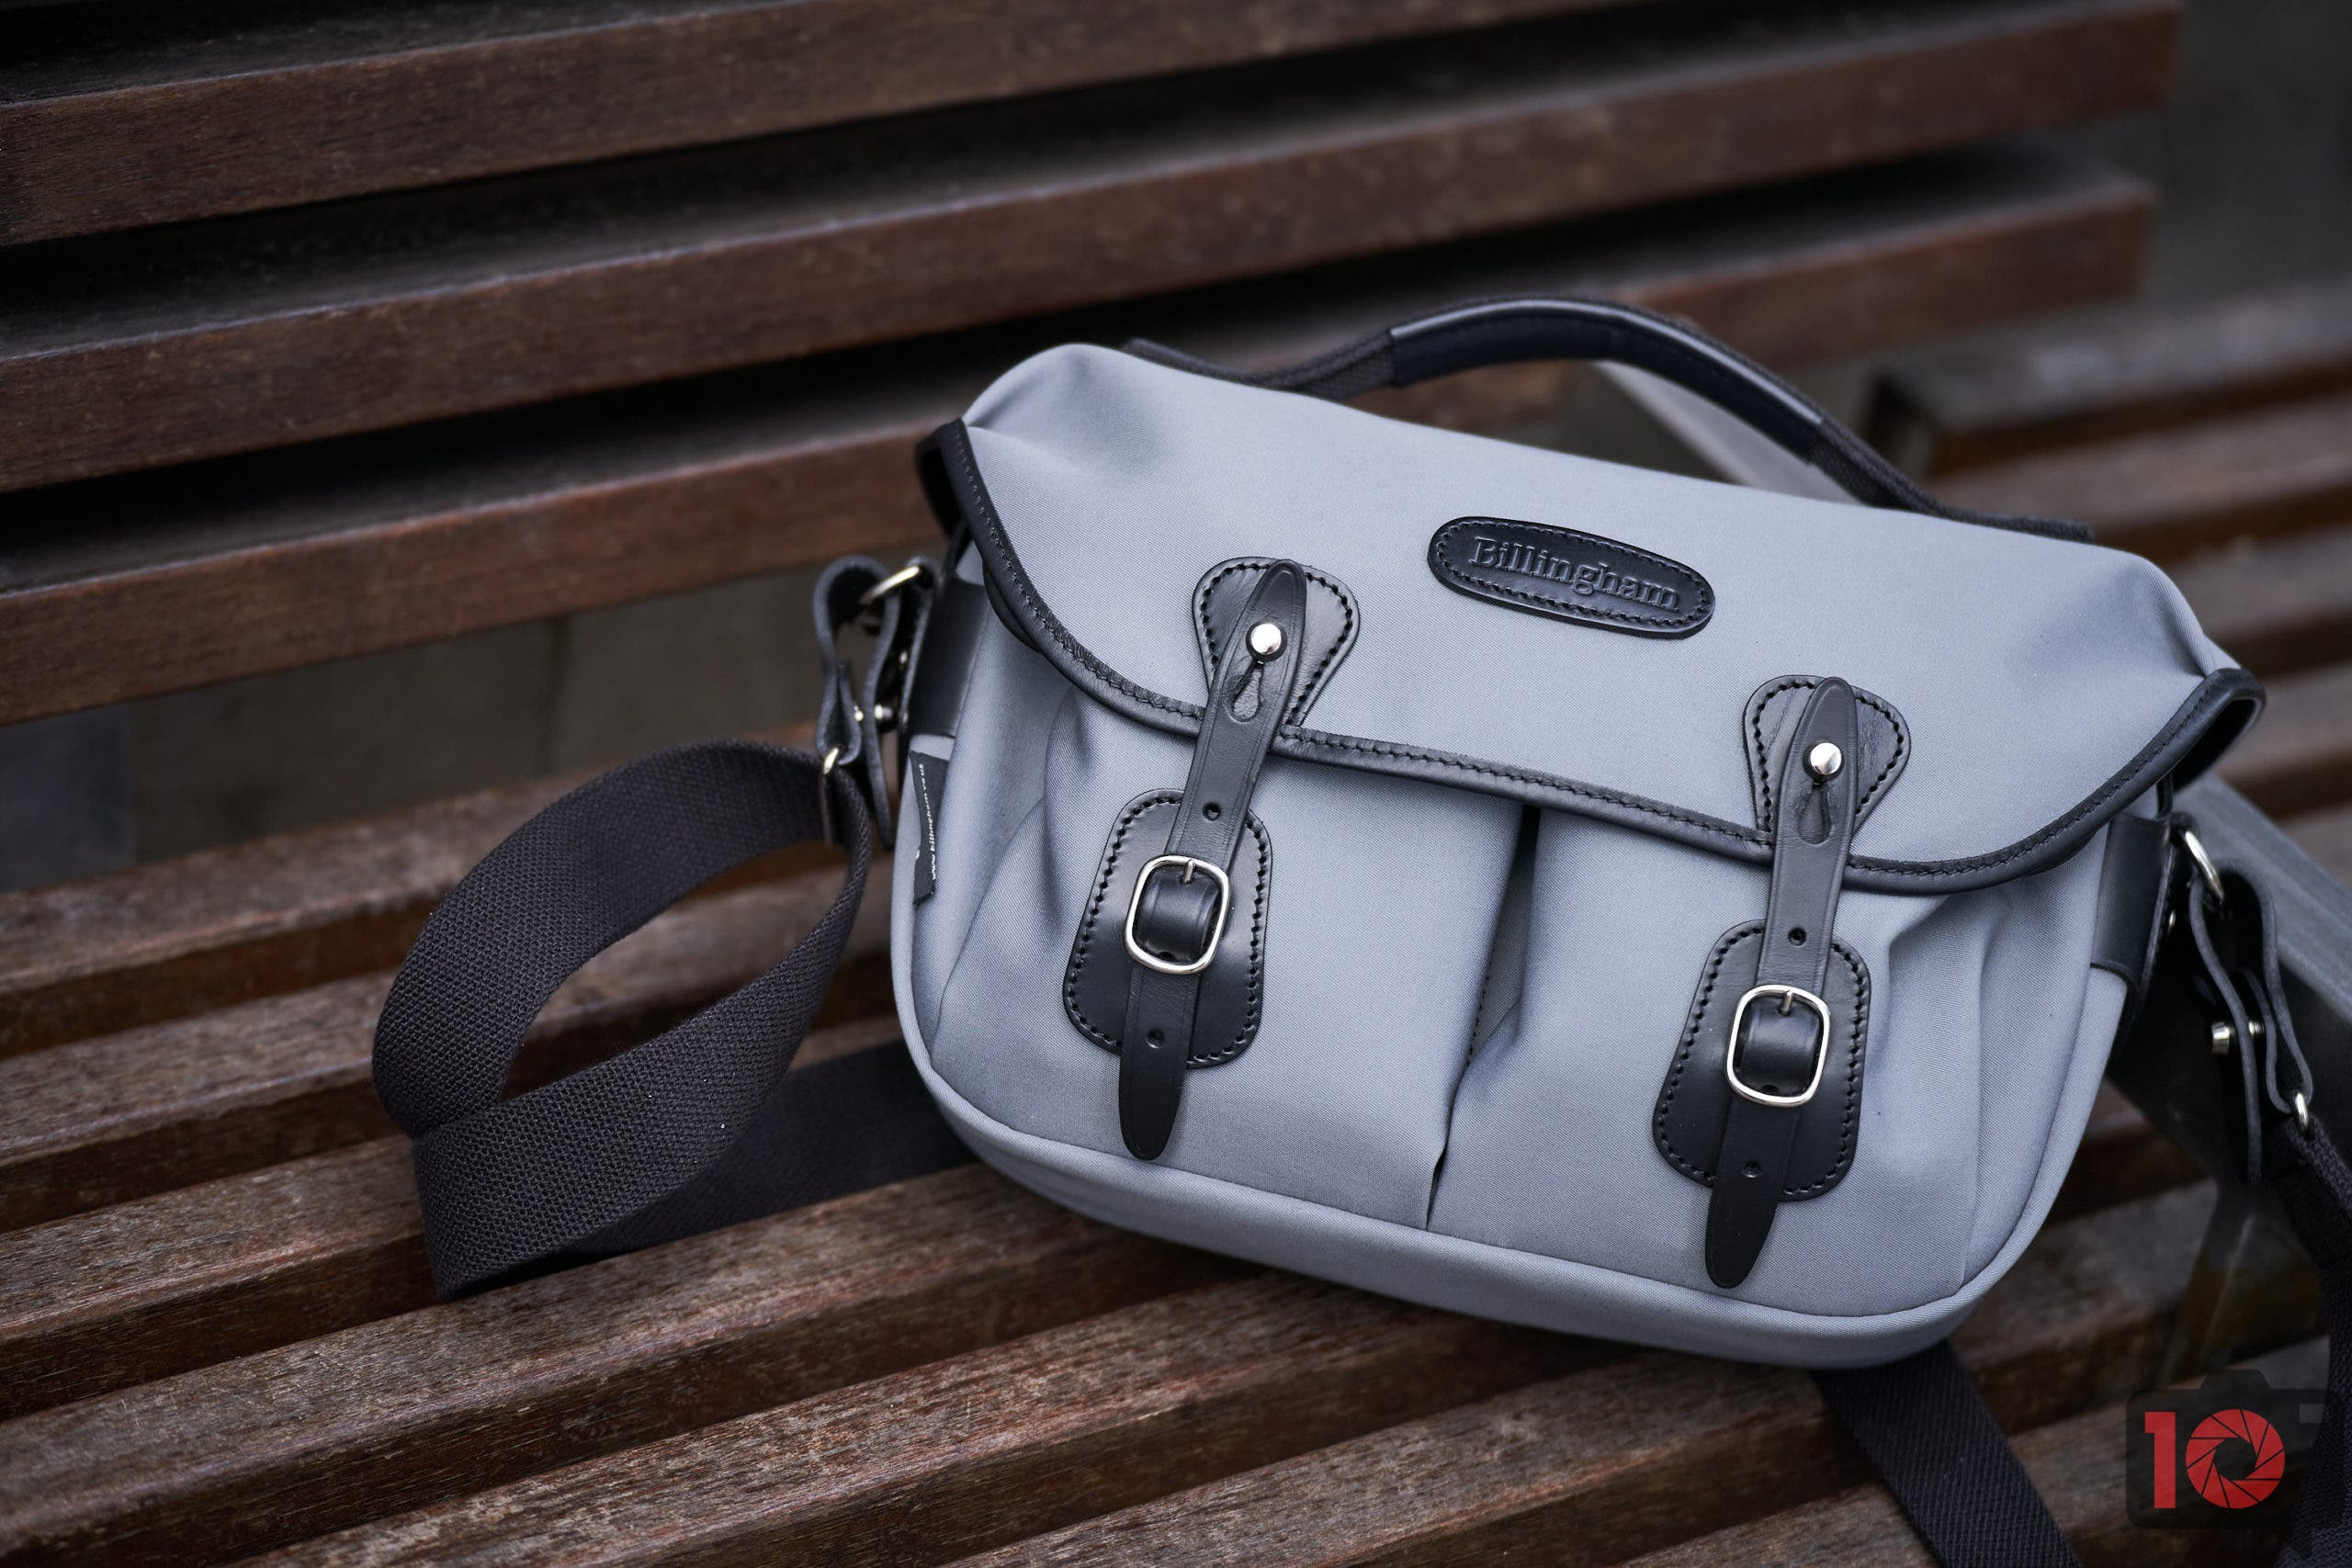 Stylish and Compact: The Gorgeous Billingham Hadley Small Pro